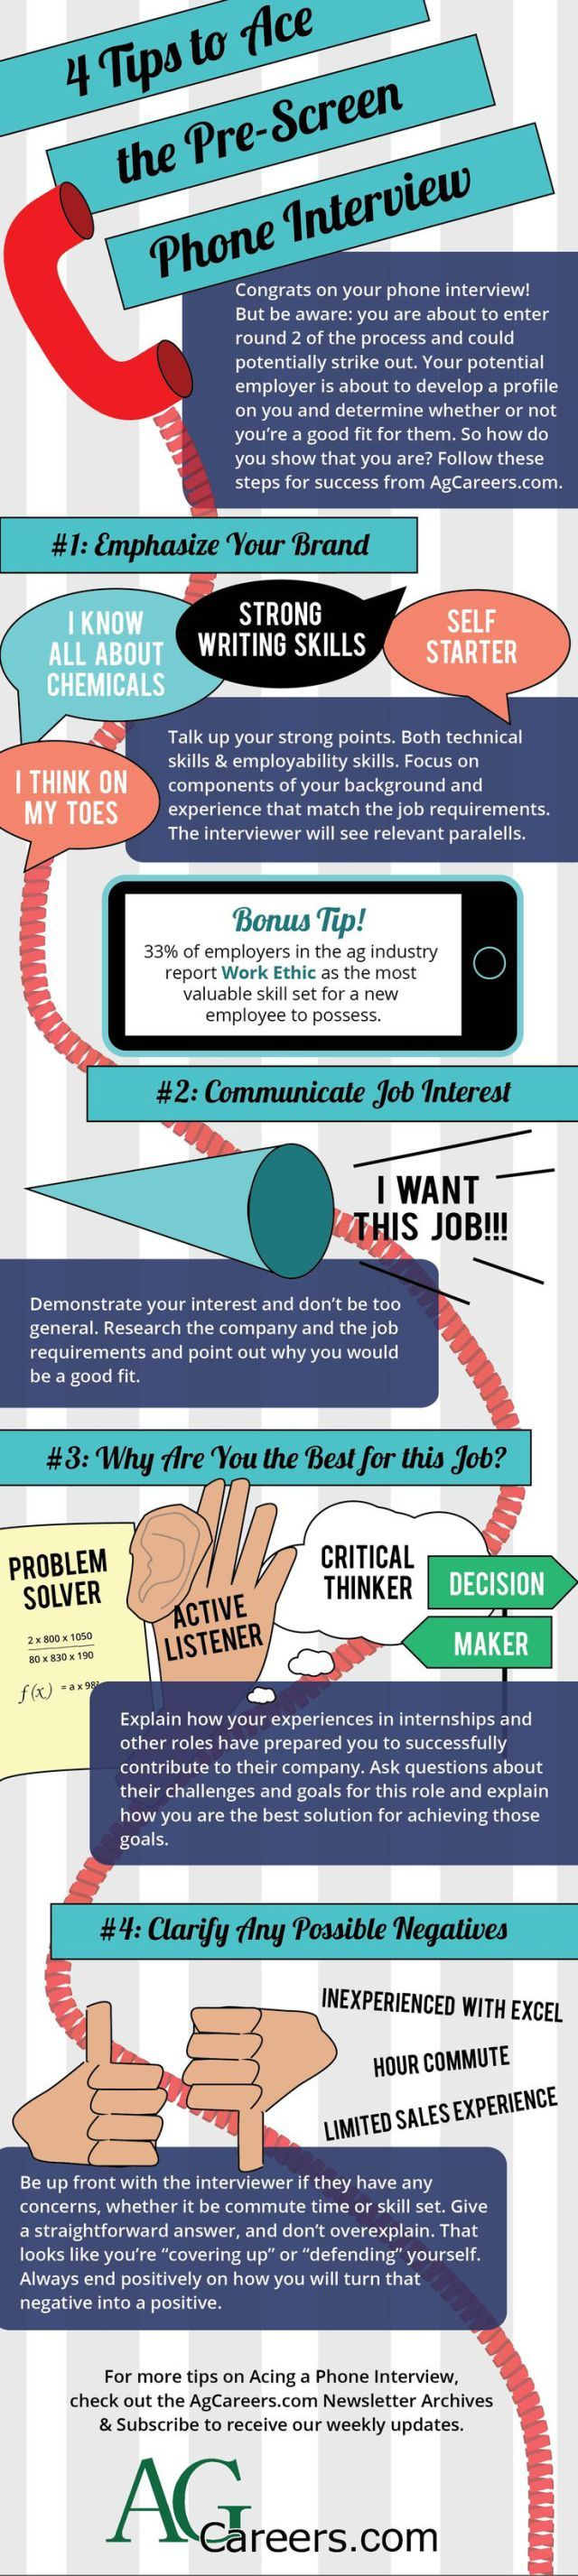 infographic : Have a Phone Interview coming up? Heres some tips to make the best impression.